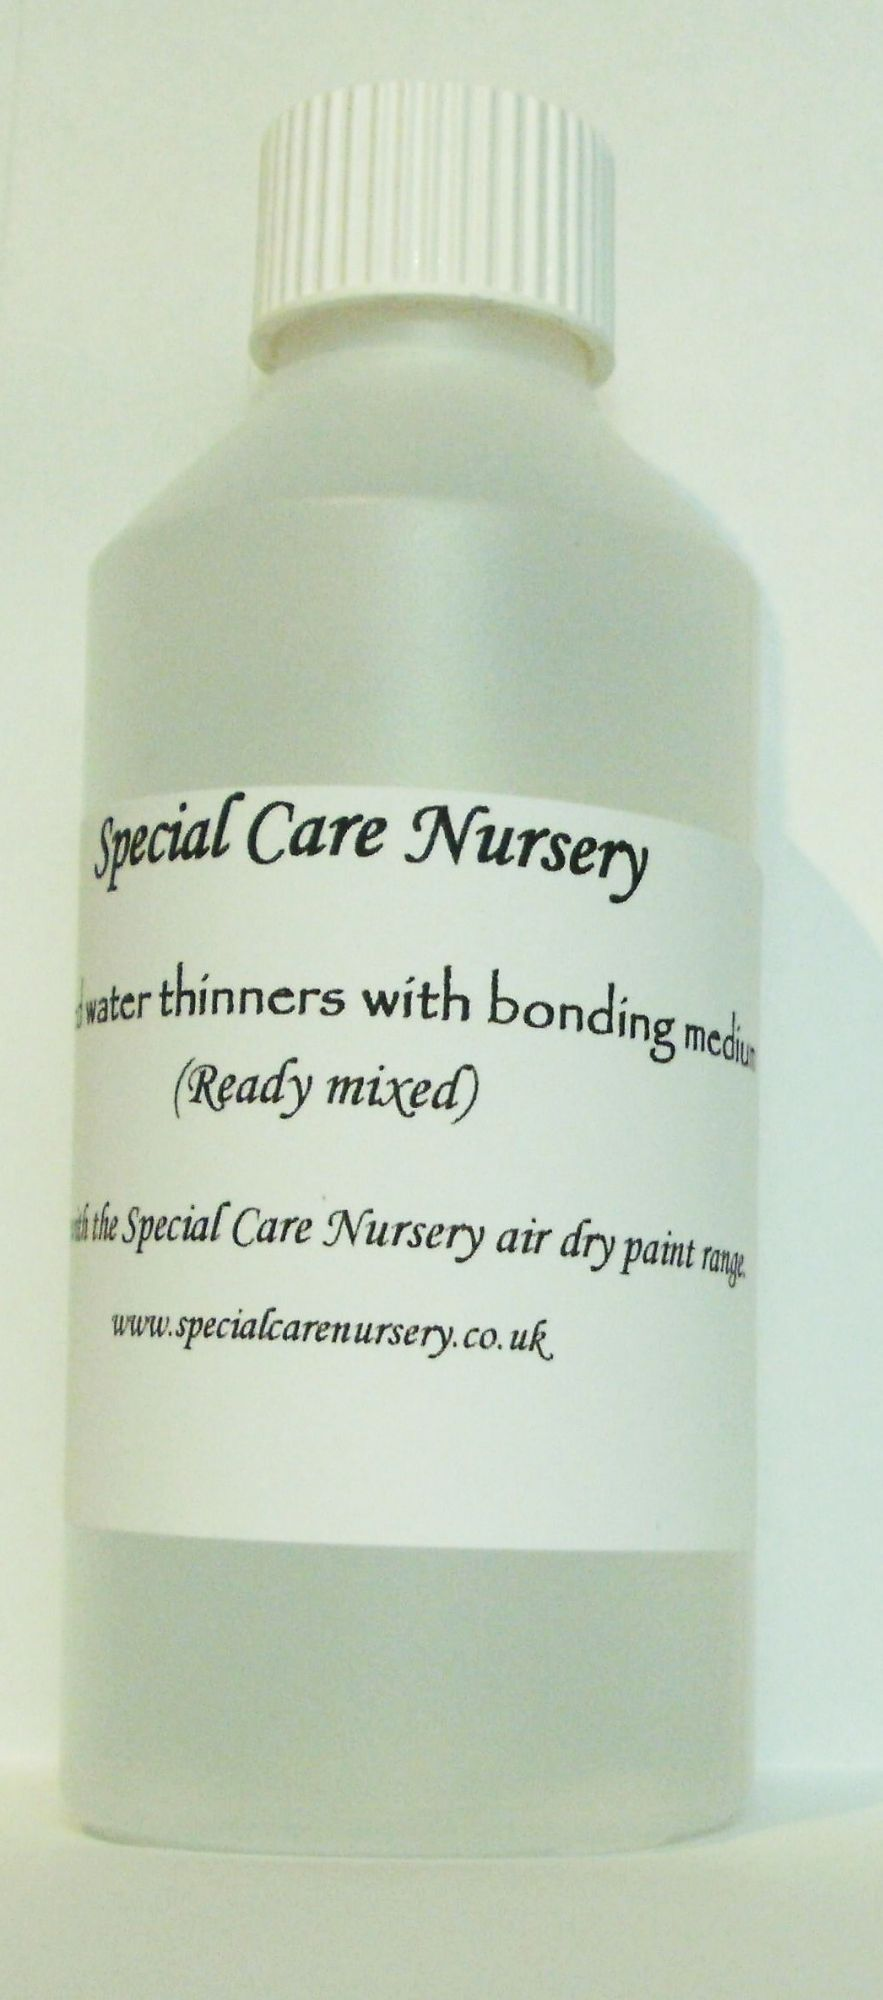 Special Care Nursery Air dry paints -  DISTILLED WATER THINNERS with added